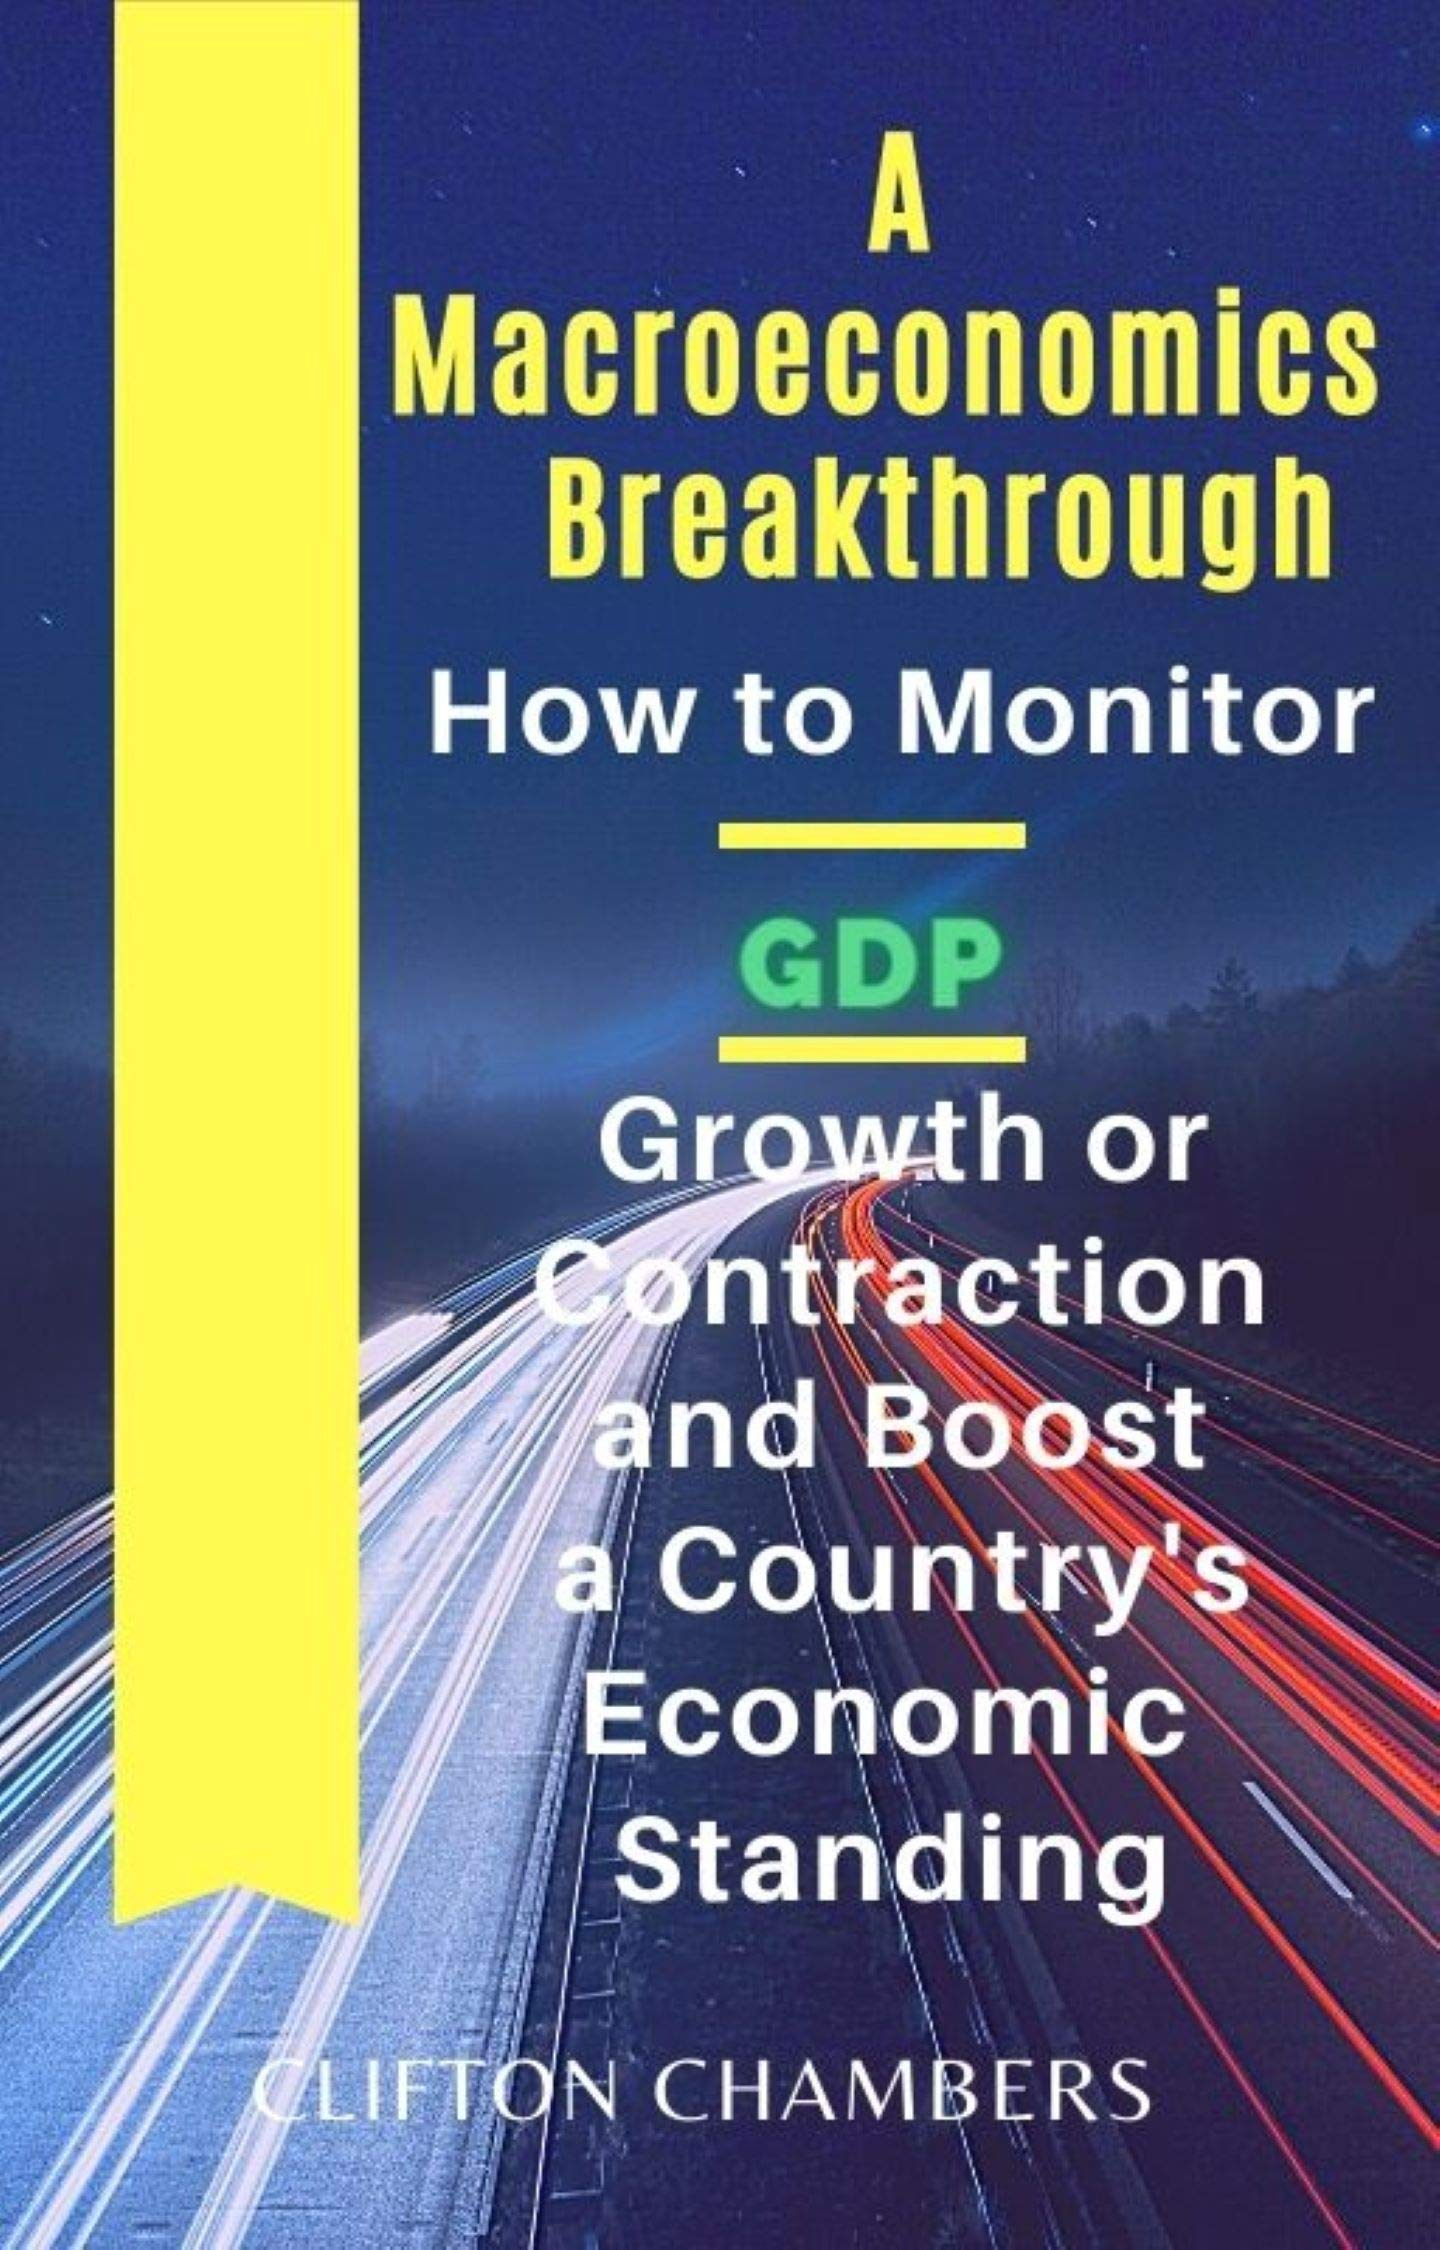 A Macroeconomics Breakthrough: How to Monitor GDP Growth or Contraction and Boost a Country's Economic Standing